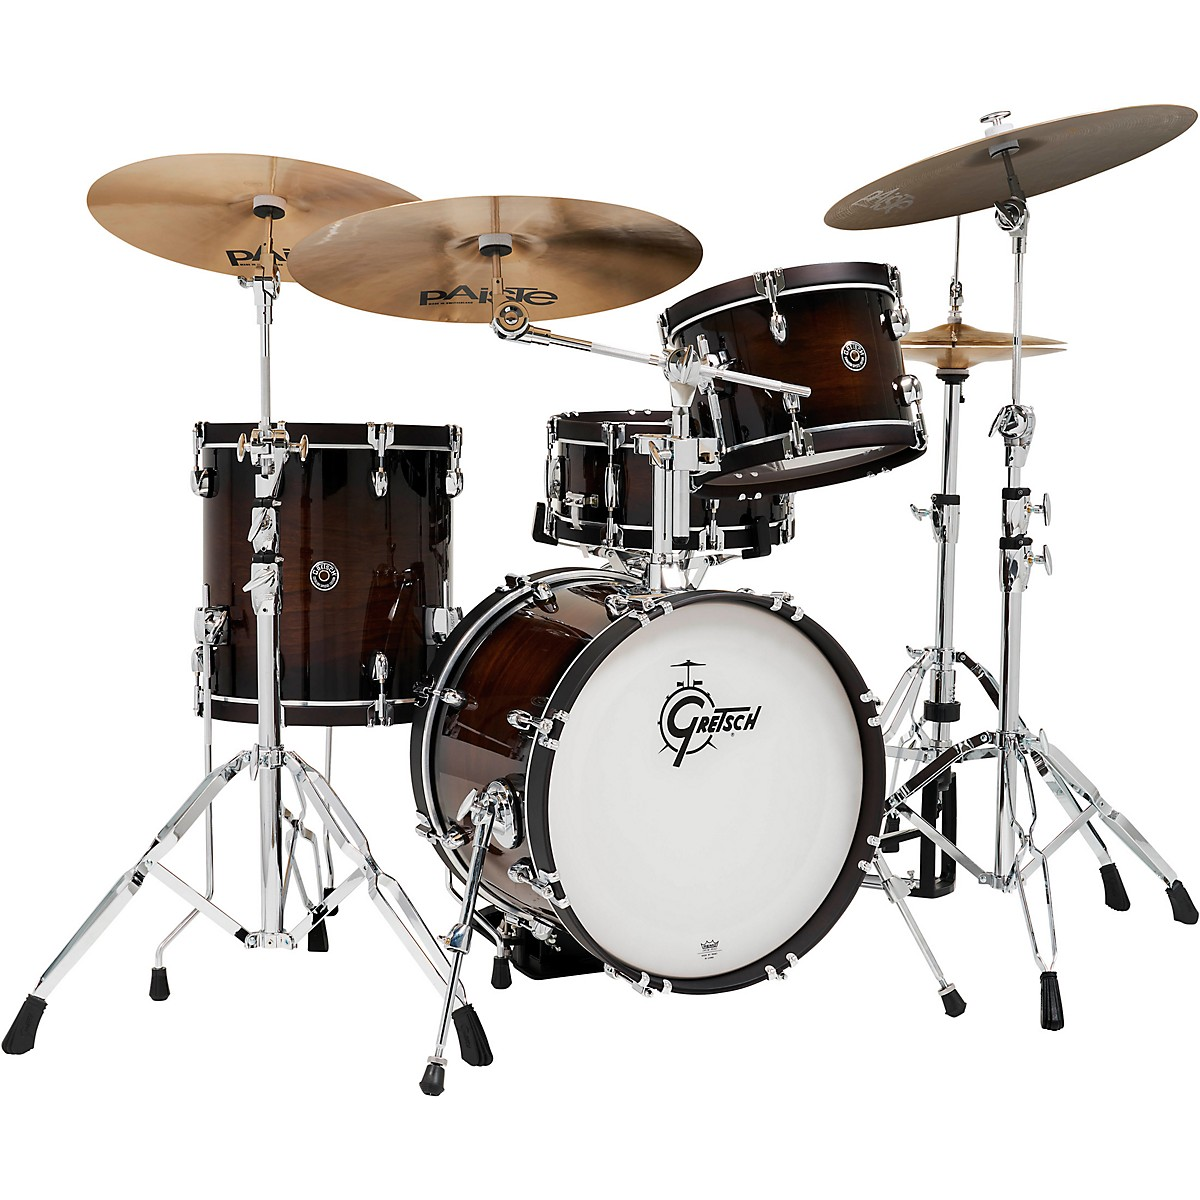 Gretsch Drums Catalina Special Edition Walnut/Maple 4-Piece Shell Pack with Wood Hoops and 18 in. Bass Drum